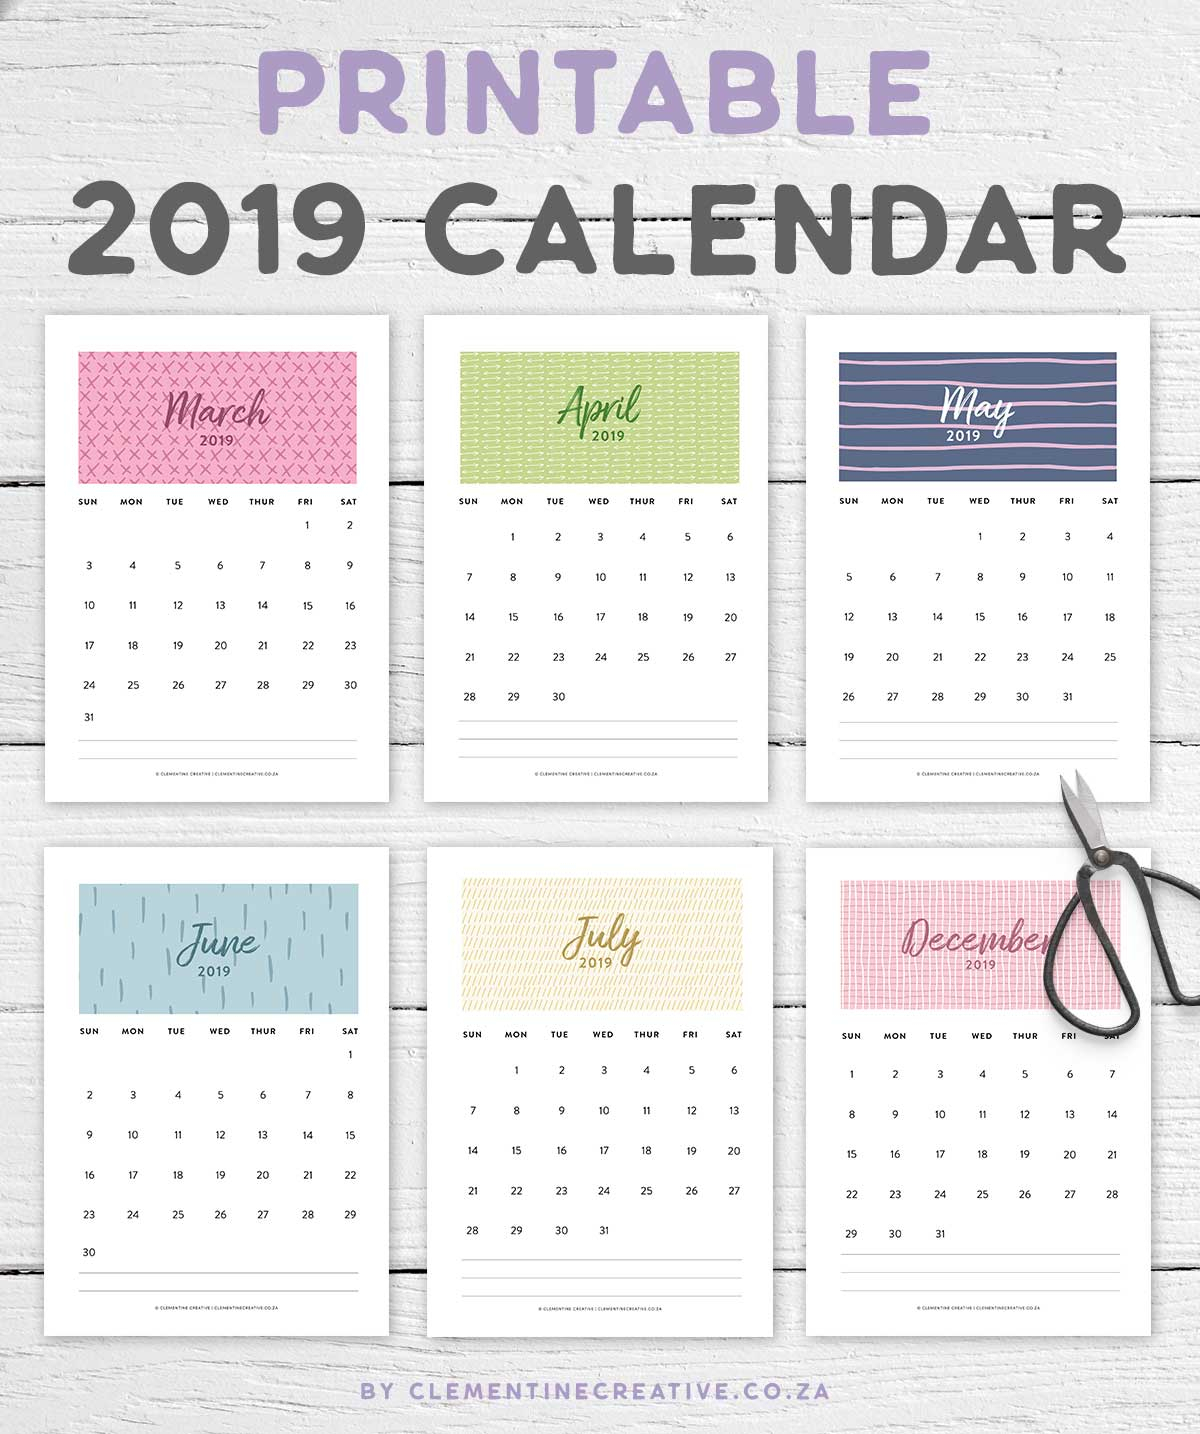 Printable 2019 Calendar | A Pretty Monthly Calendar intended for Pretty Printable Calendar